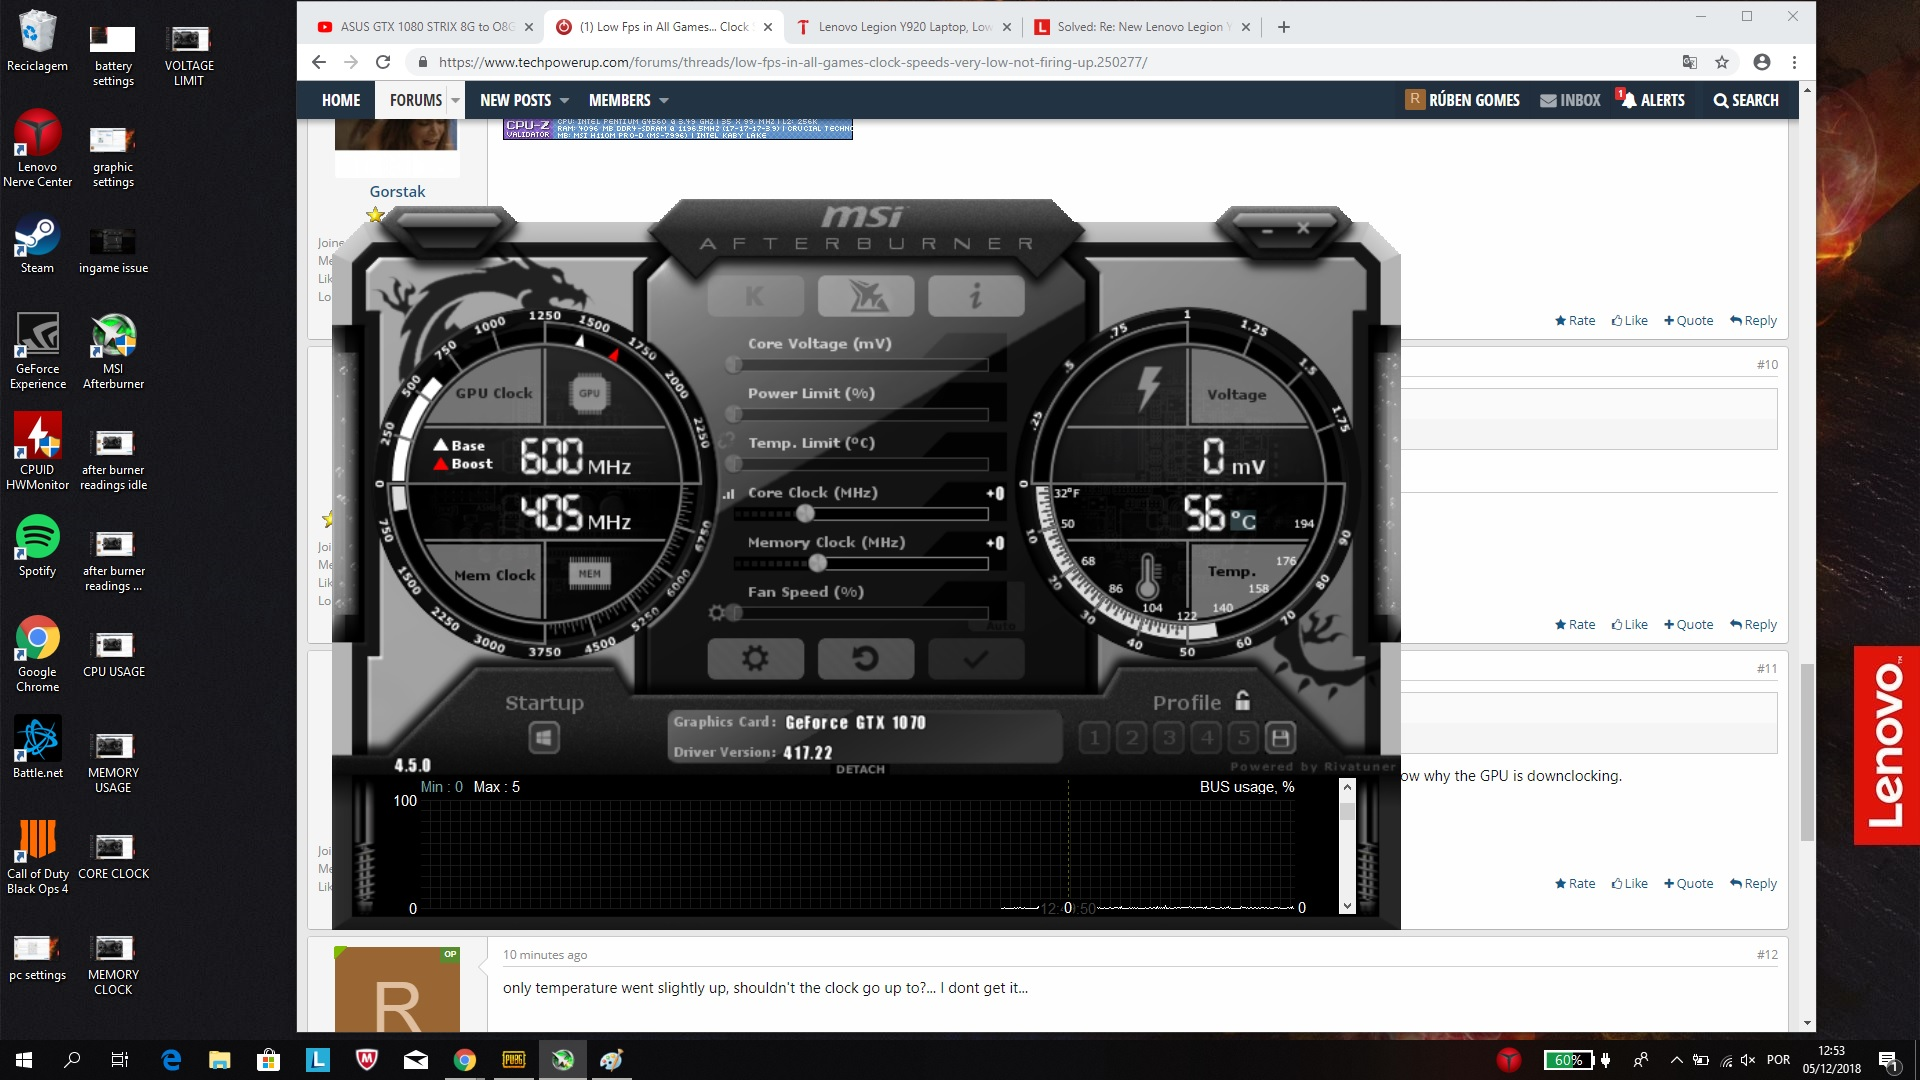 Low Fps in All Games    Clock Speeds very low, not firing up